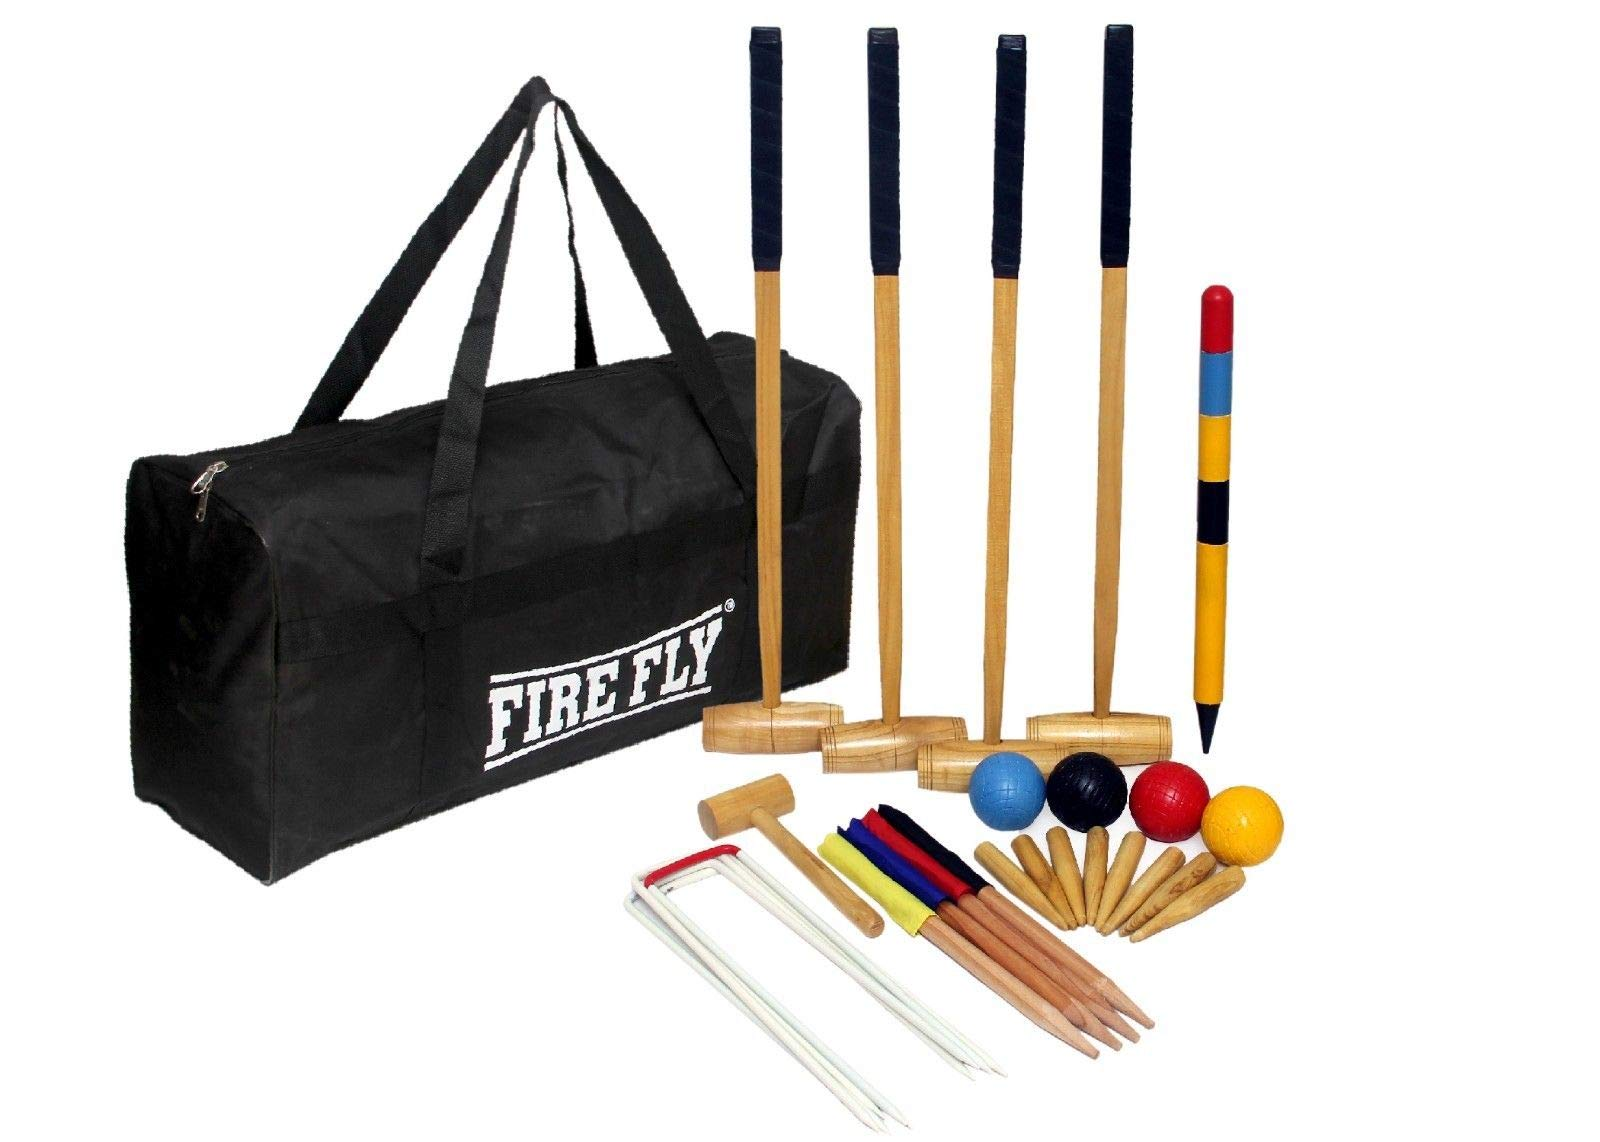 C&W Four-Player Croquet Set with Wooden Mallets, Colored Balls, Sturdy Carrying Bag for Adults &Kids, Perfect for Lawn,Backyard,Park and More by